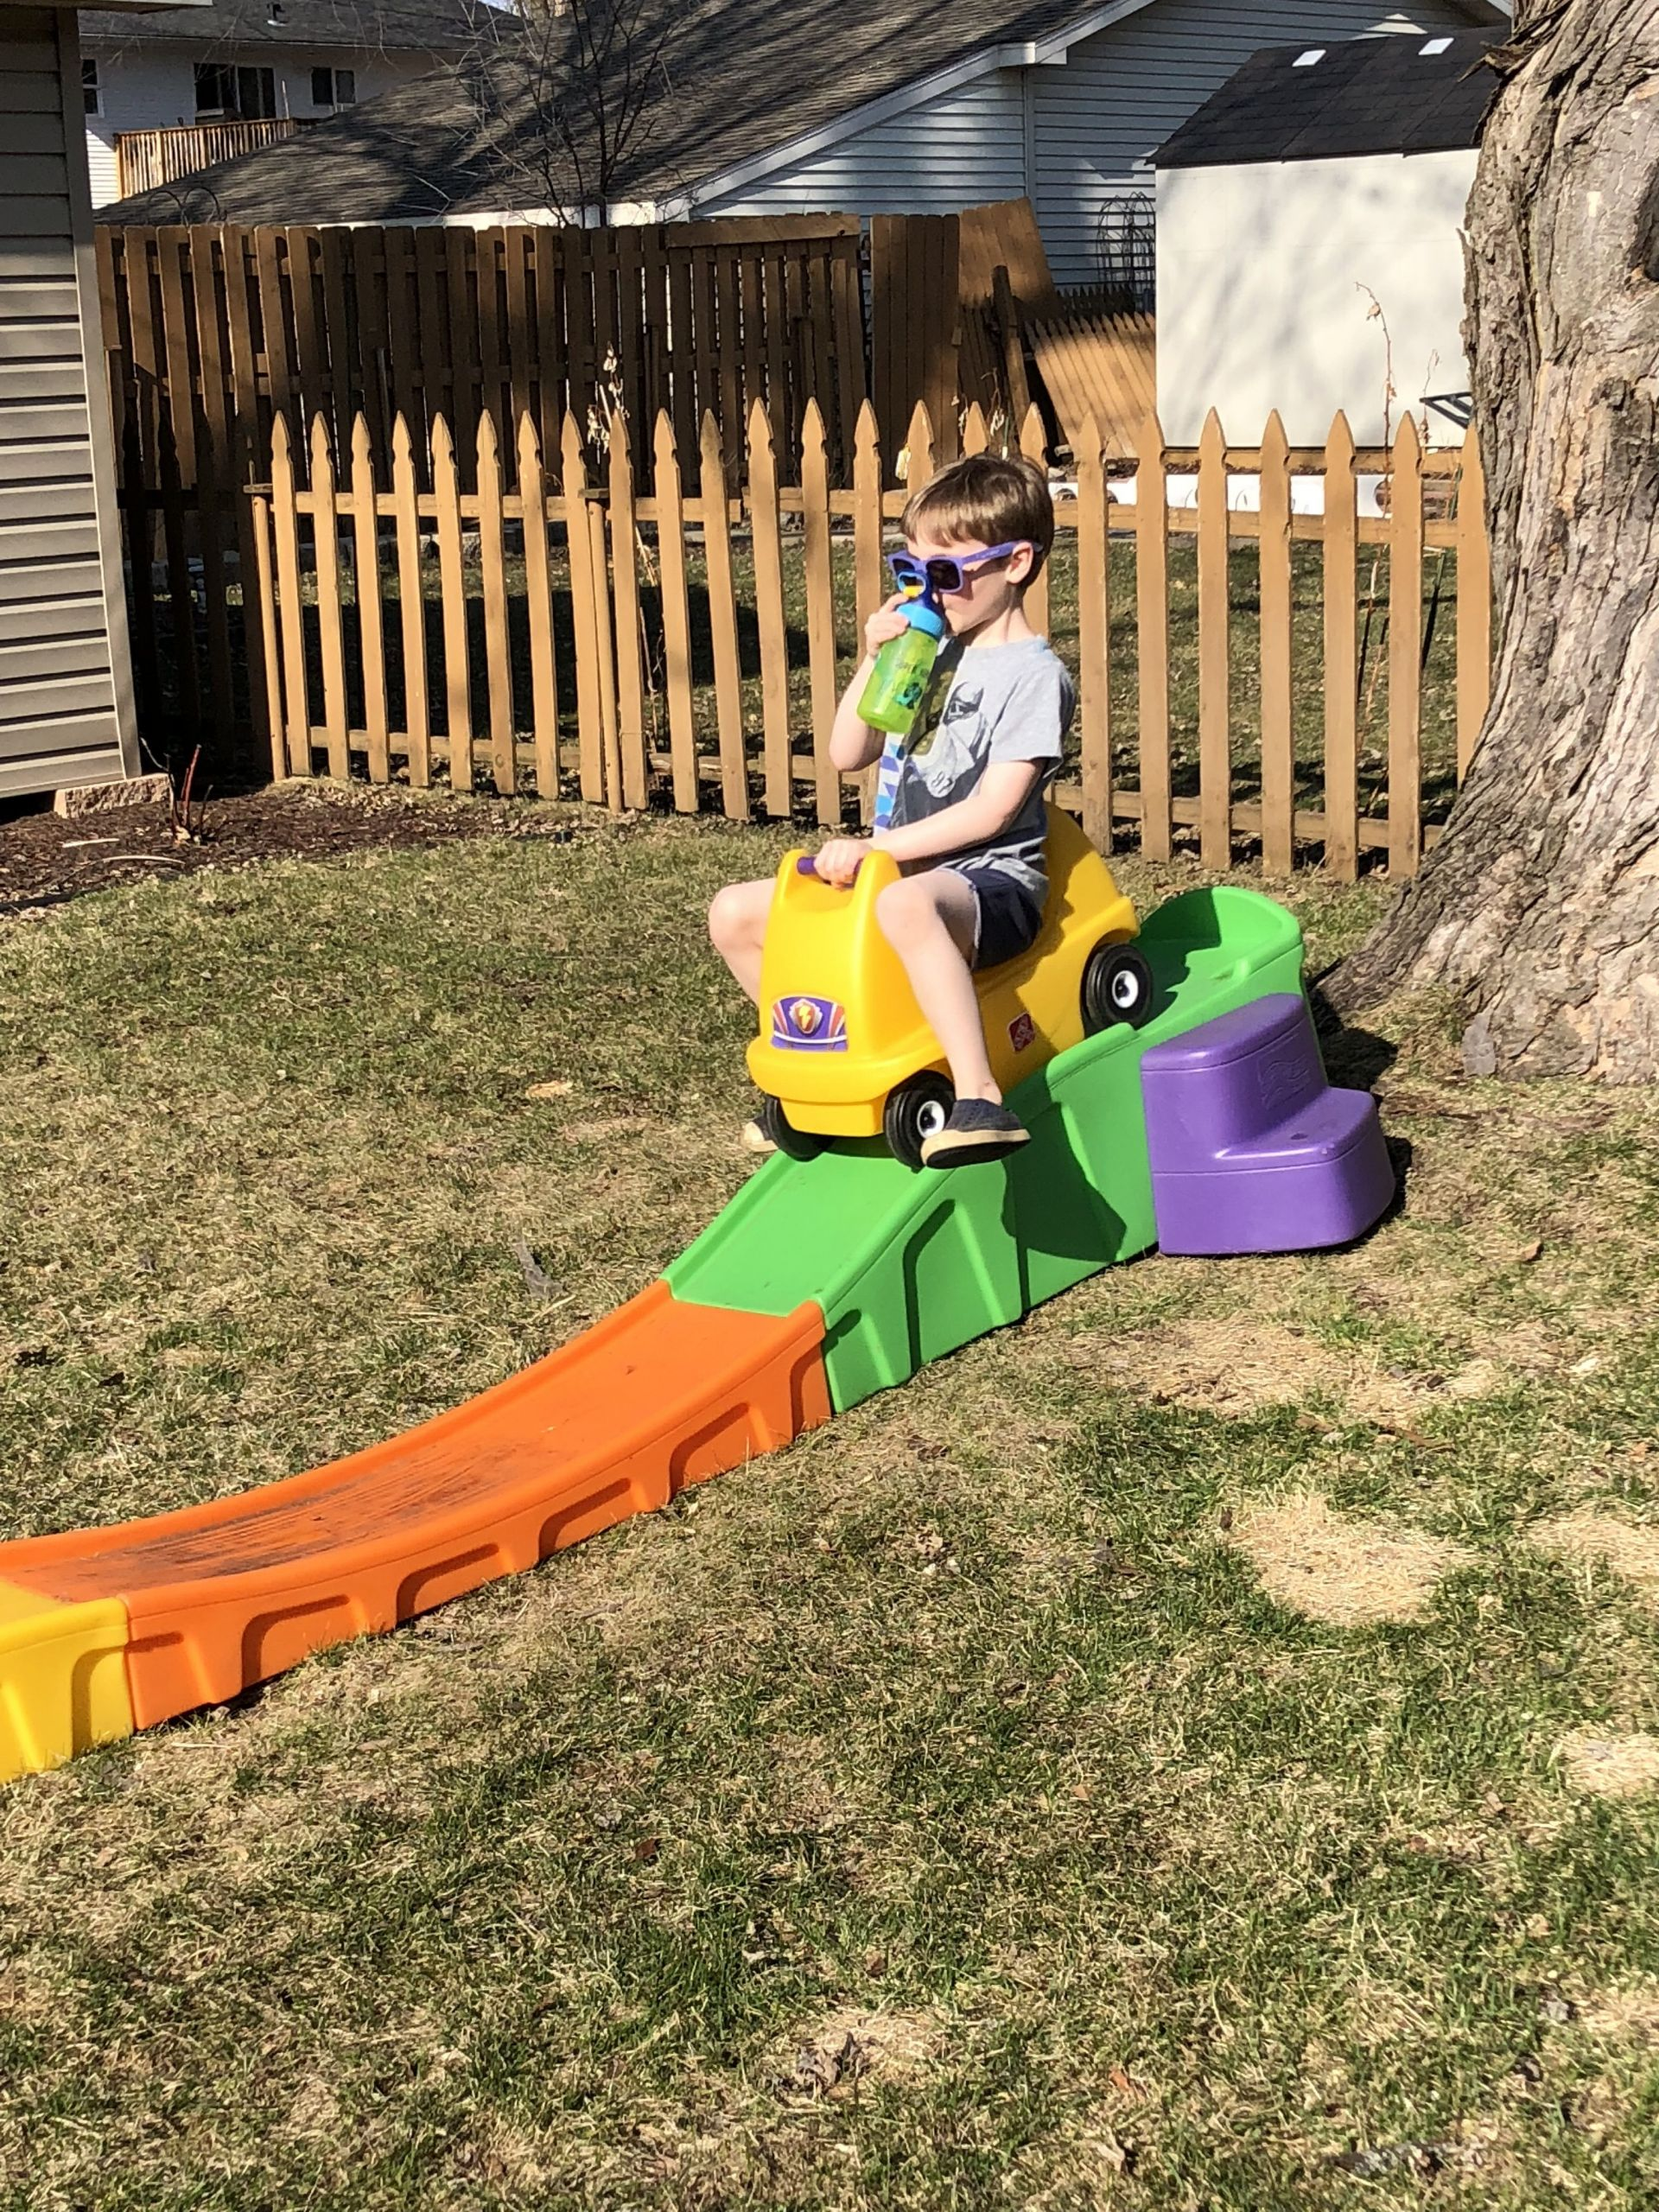 Cool Outdoor Toys For Kids  Top 8 Outdoor Toys for Kids North Trend